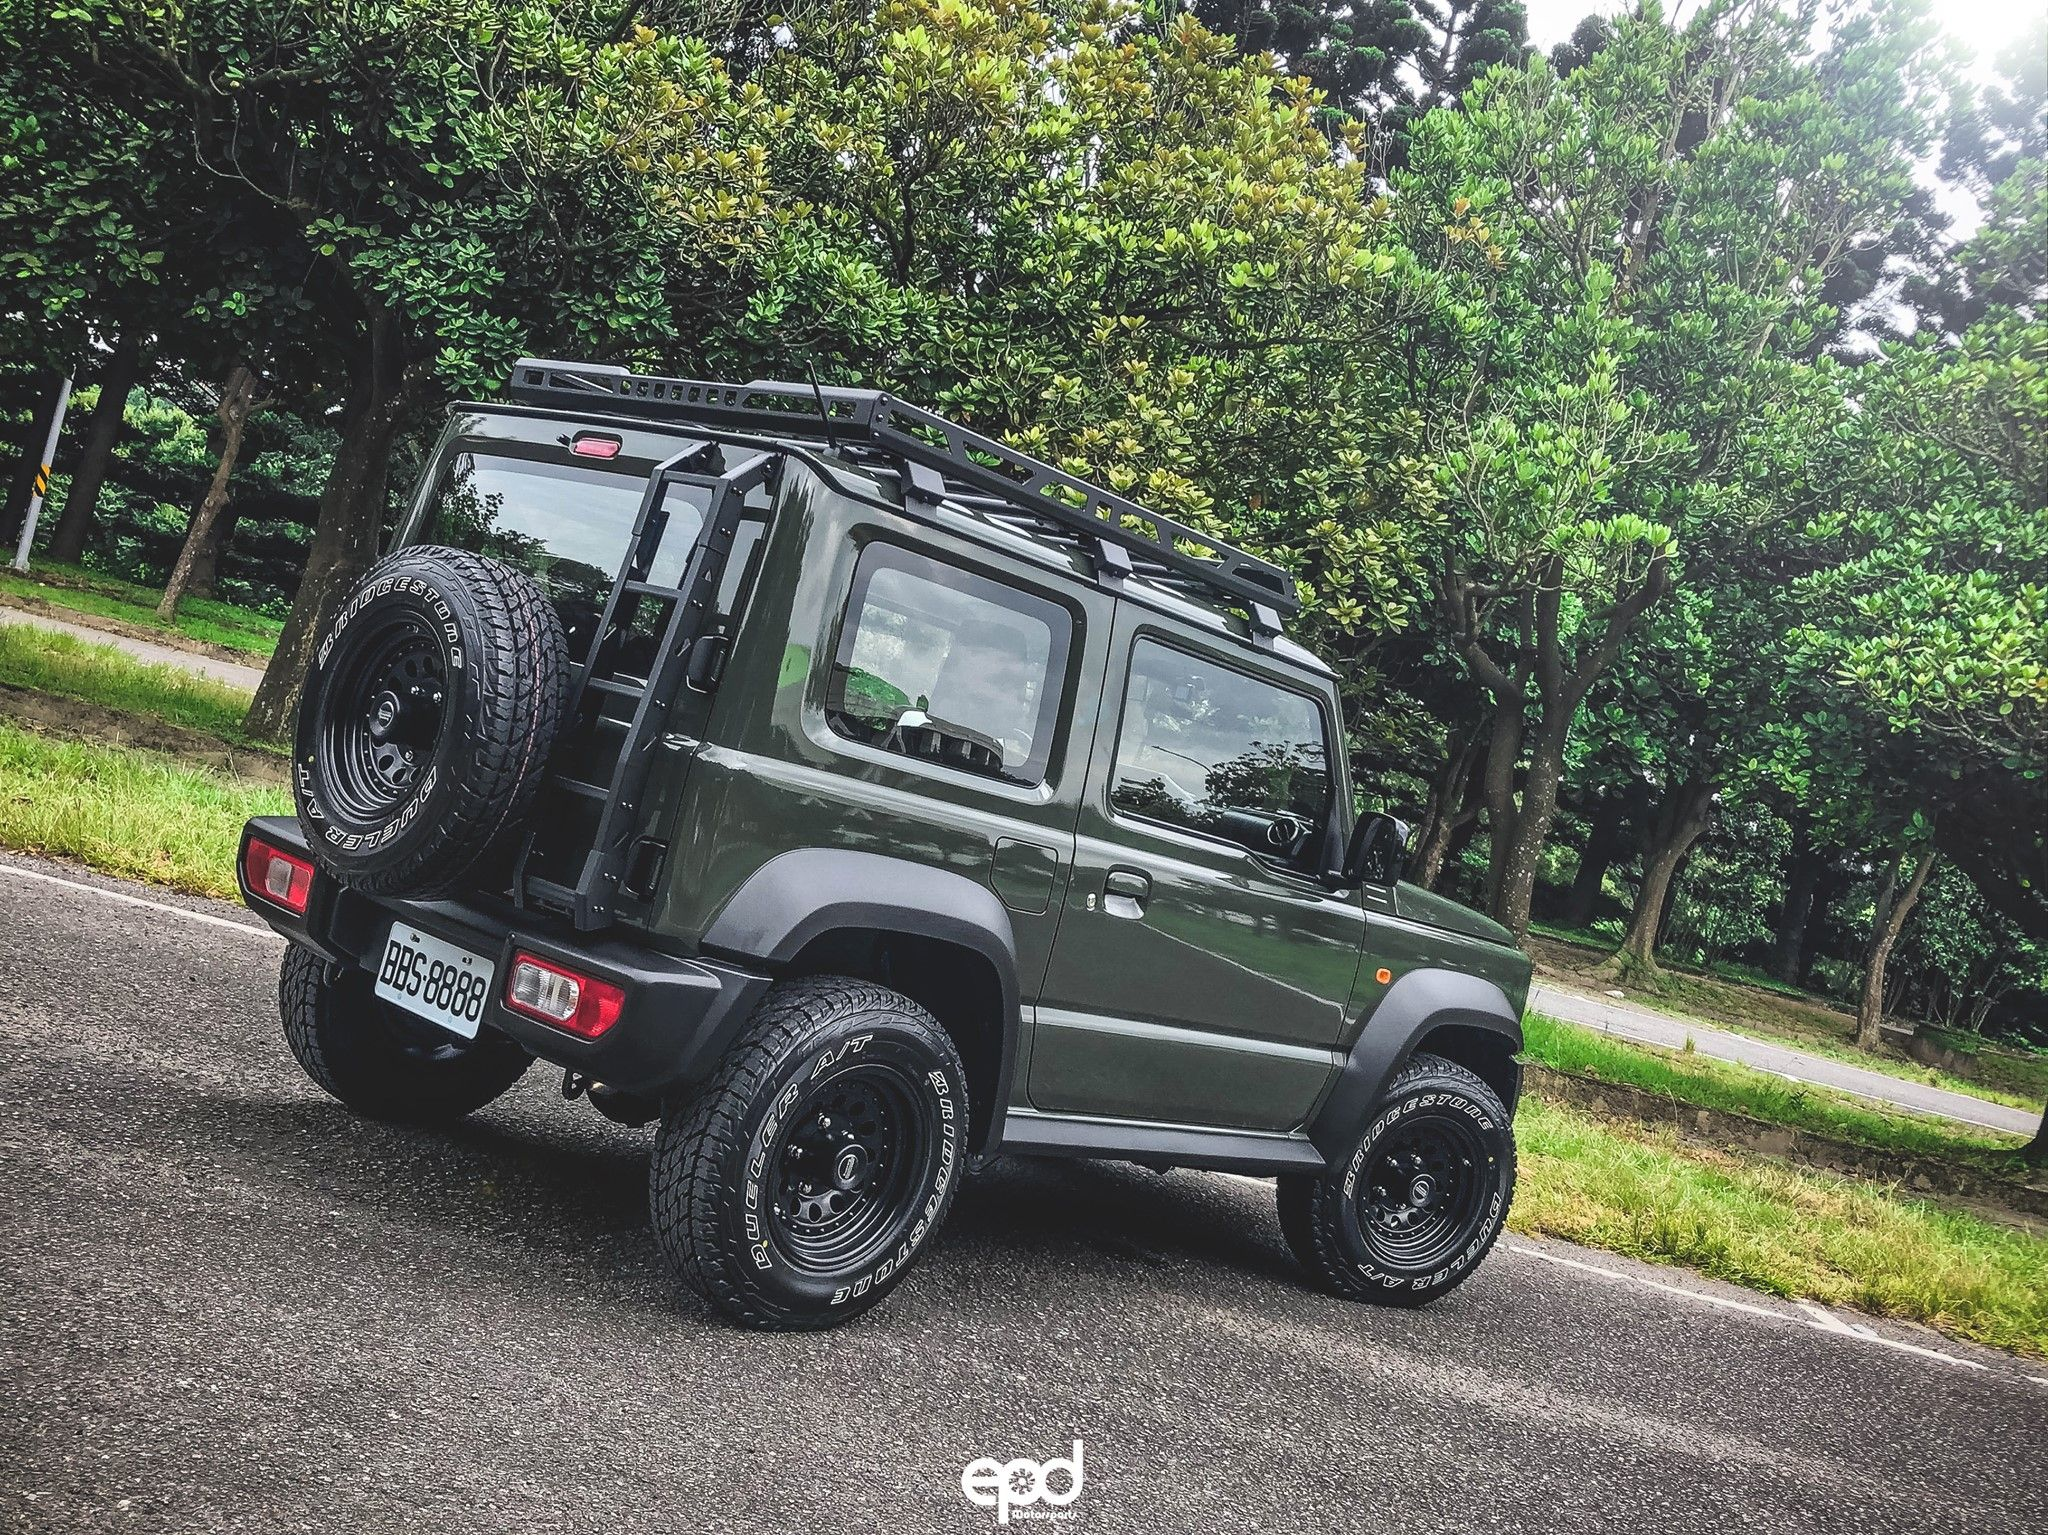 Baby G Jimny Sierra With Fi Exhaust Catback Posing For Spec R汽車性能情報 Pictures For More Product Information Email Inf Suzuki Jimny Jimny Sierra New Suzuki Jimny